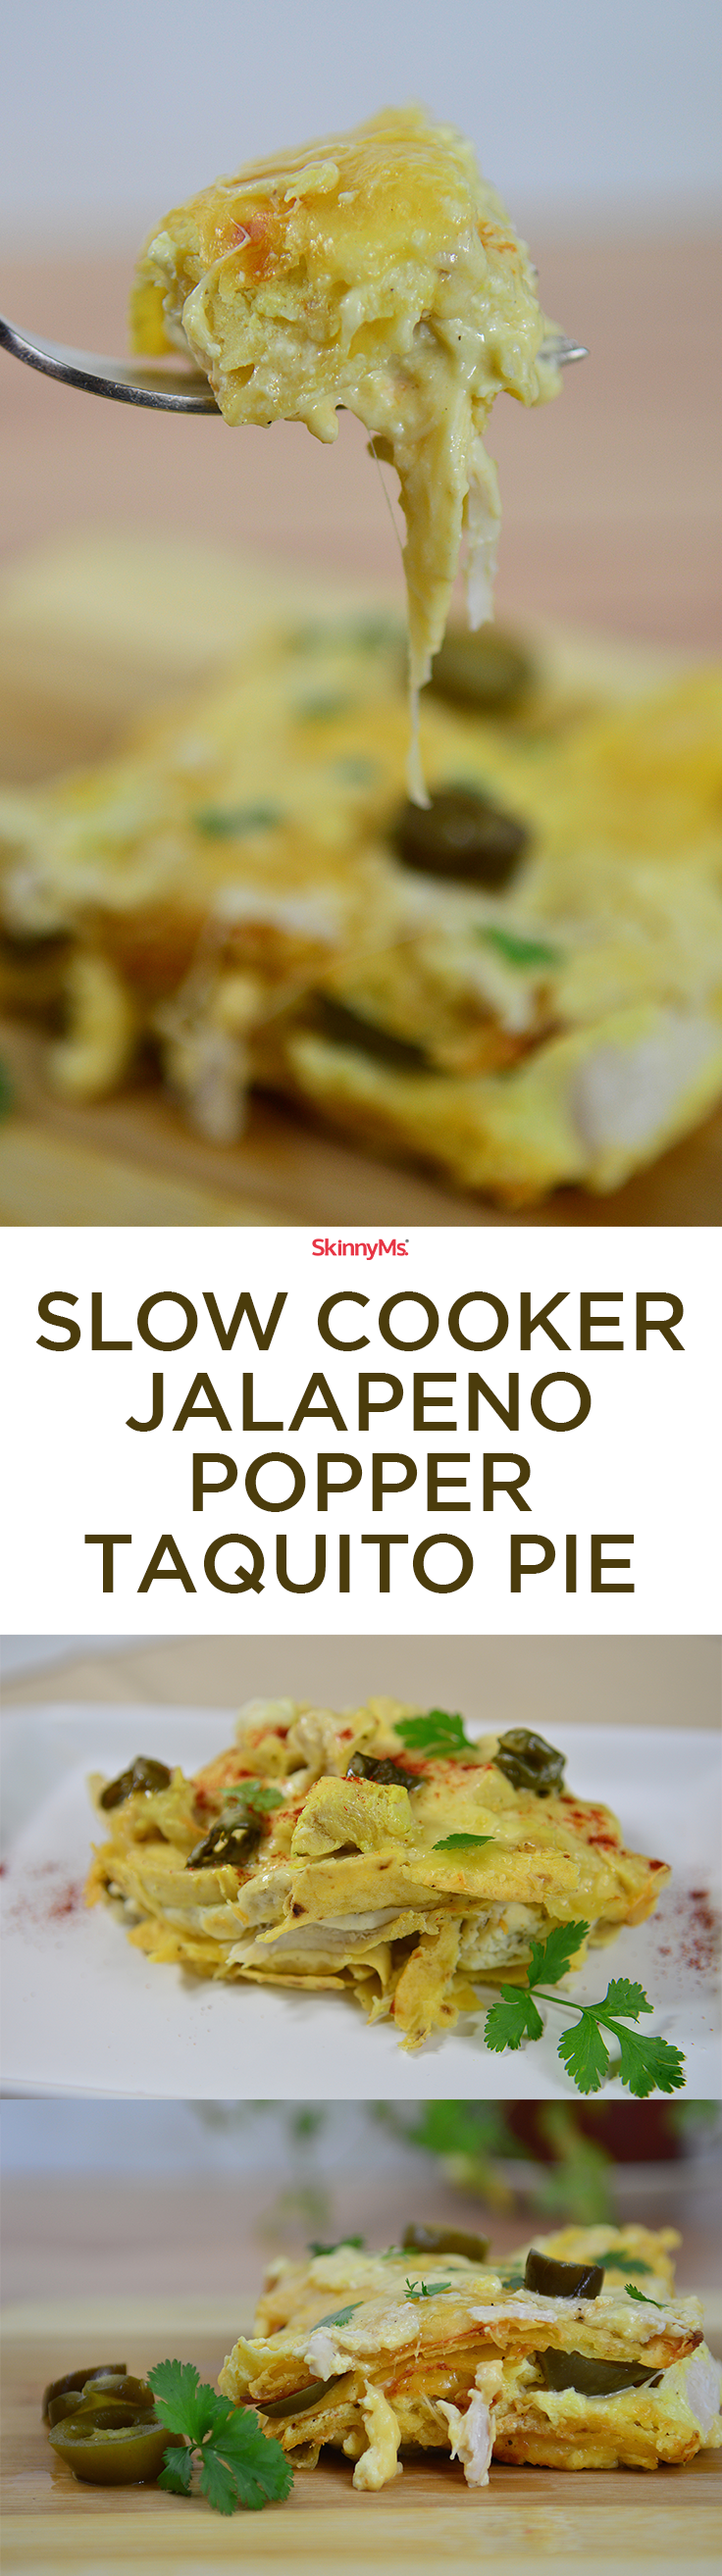 Slow Cooker Jalapeno Taquito Pie